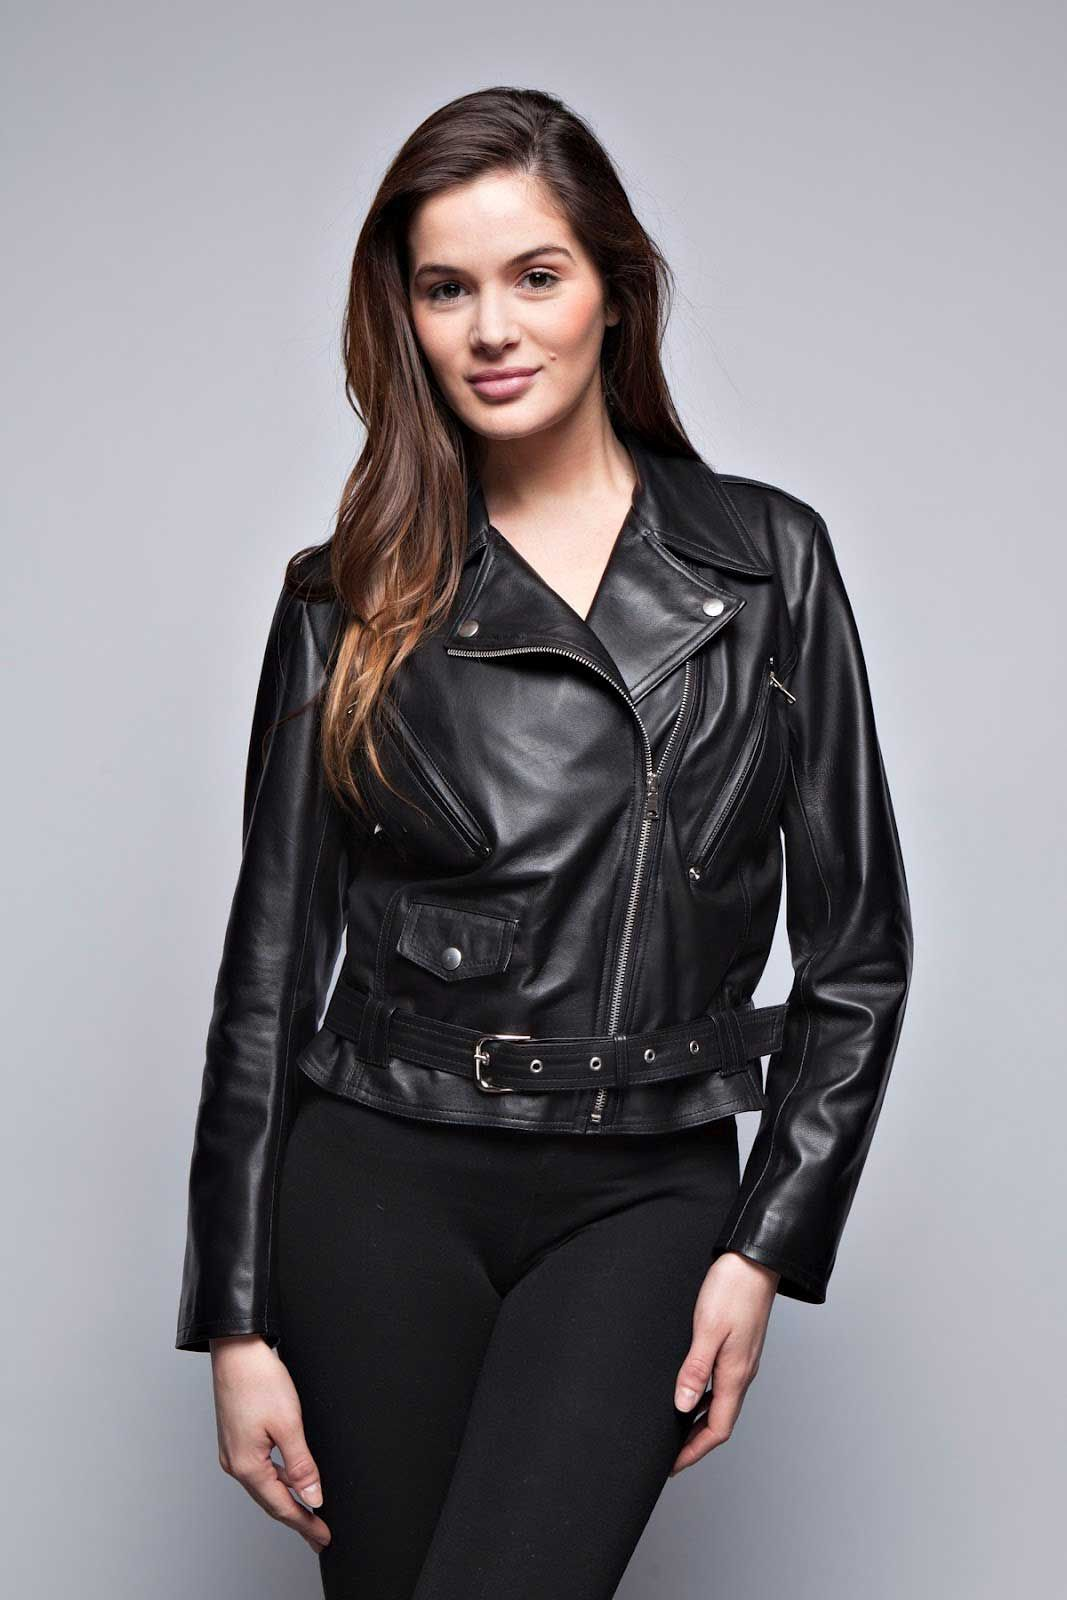 1000  images about Leather fashion on Pinterest | Leather jackets